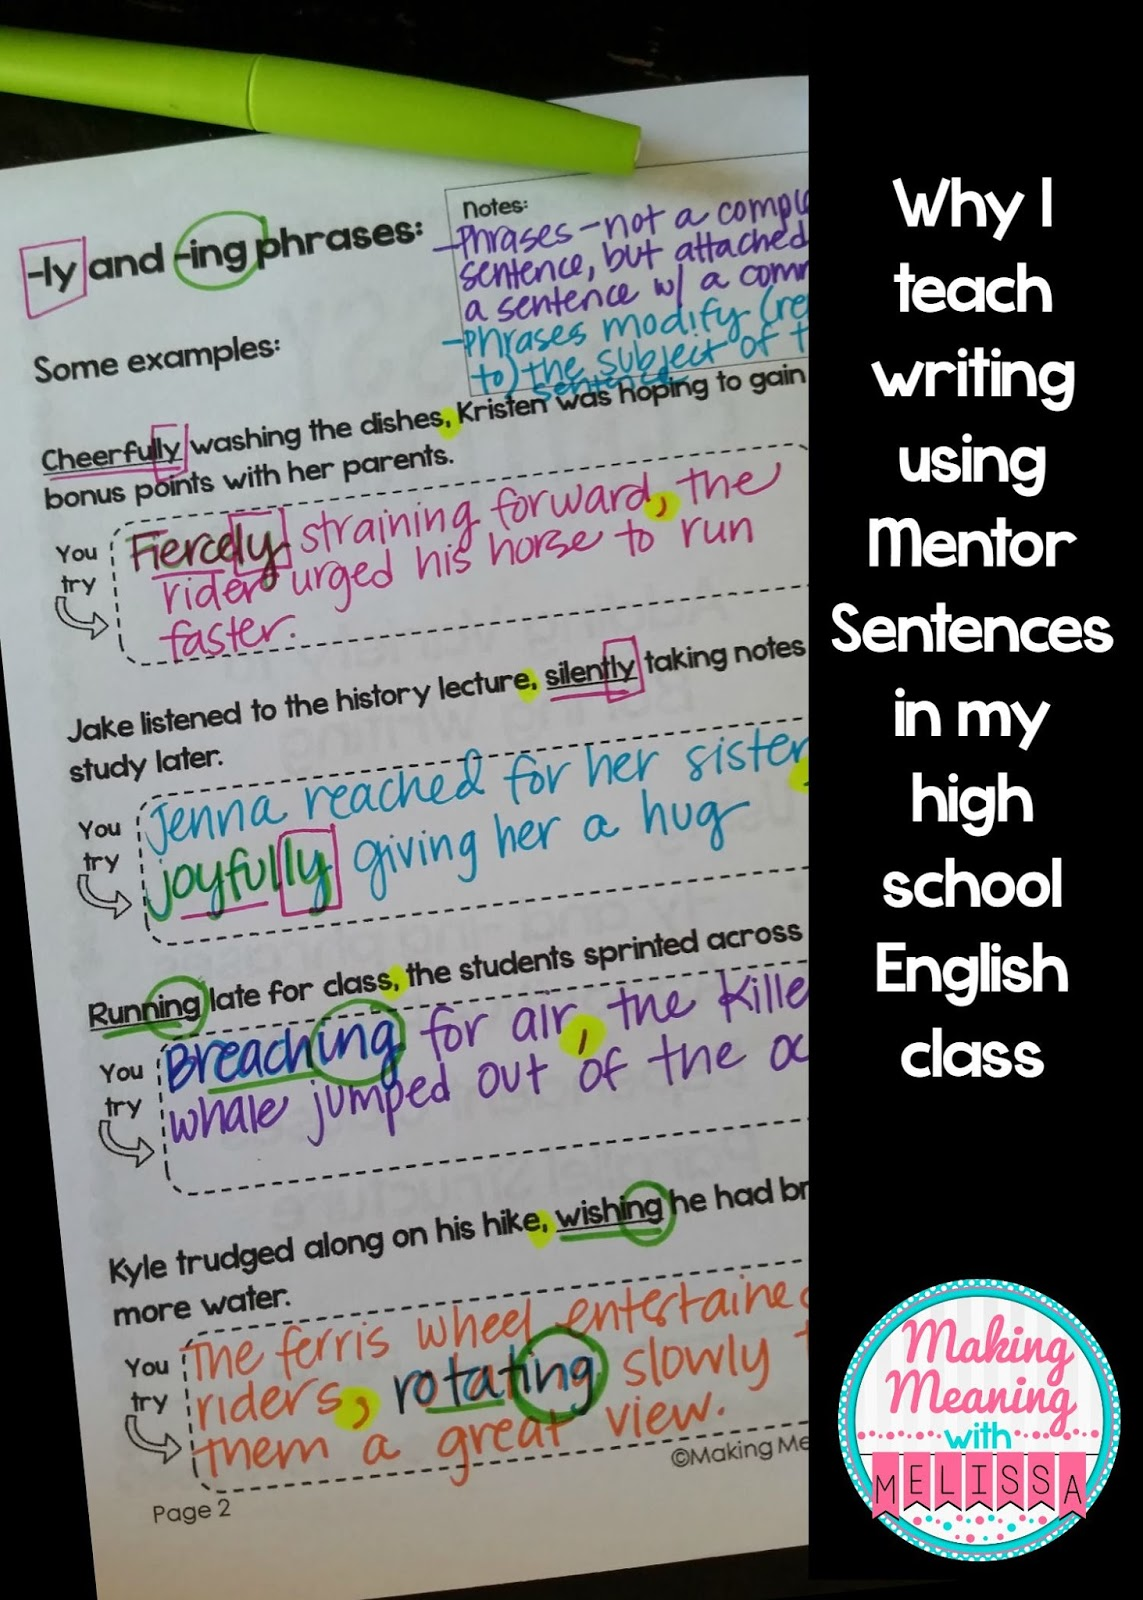 making meaning melissa why i use mentor sentences to teach  why i use mentor sentences to teach writing in my high school english classroom